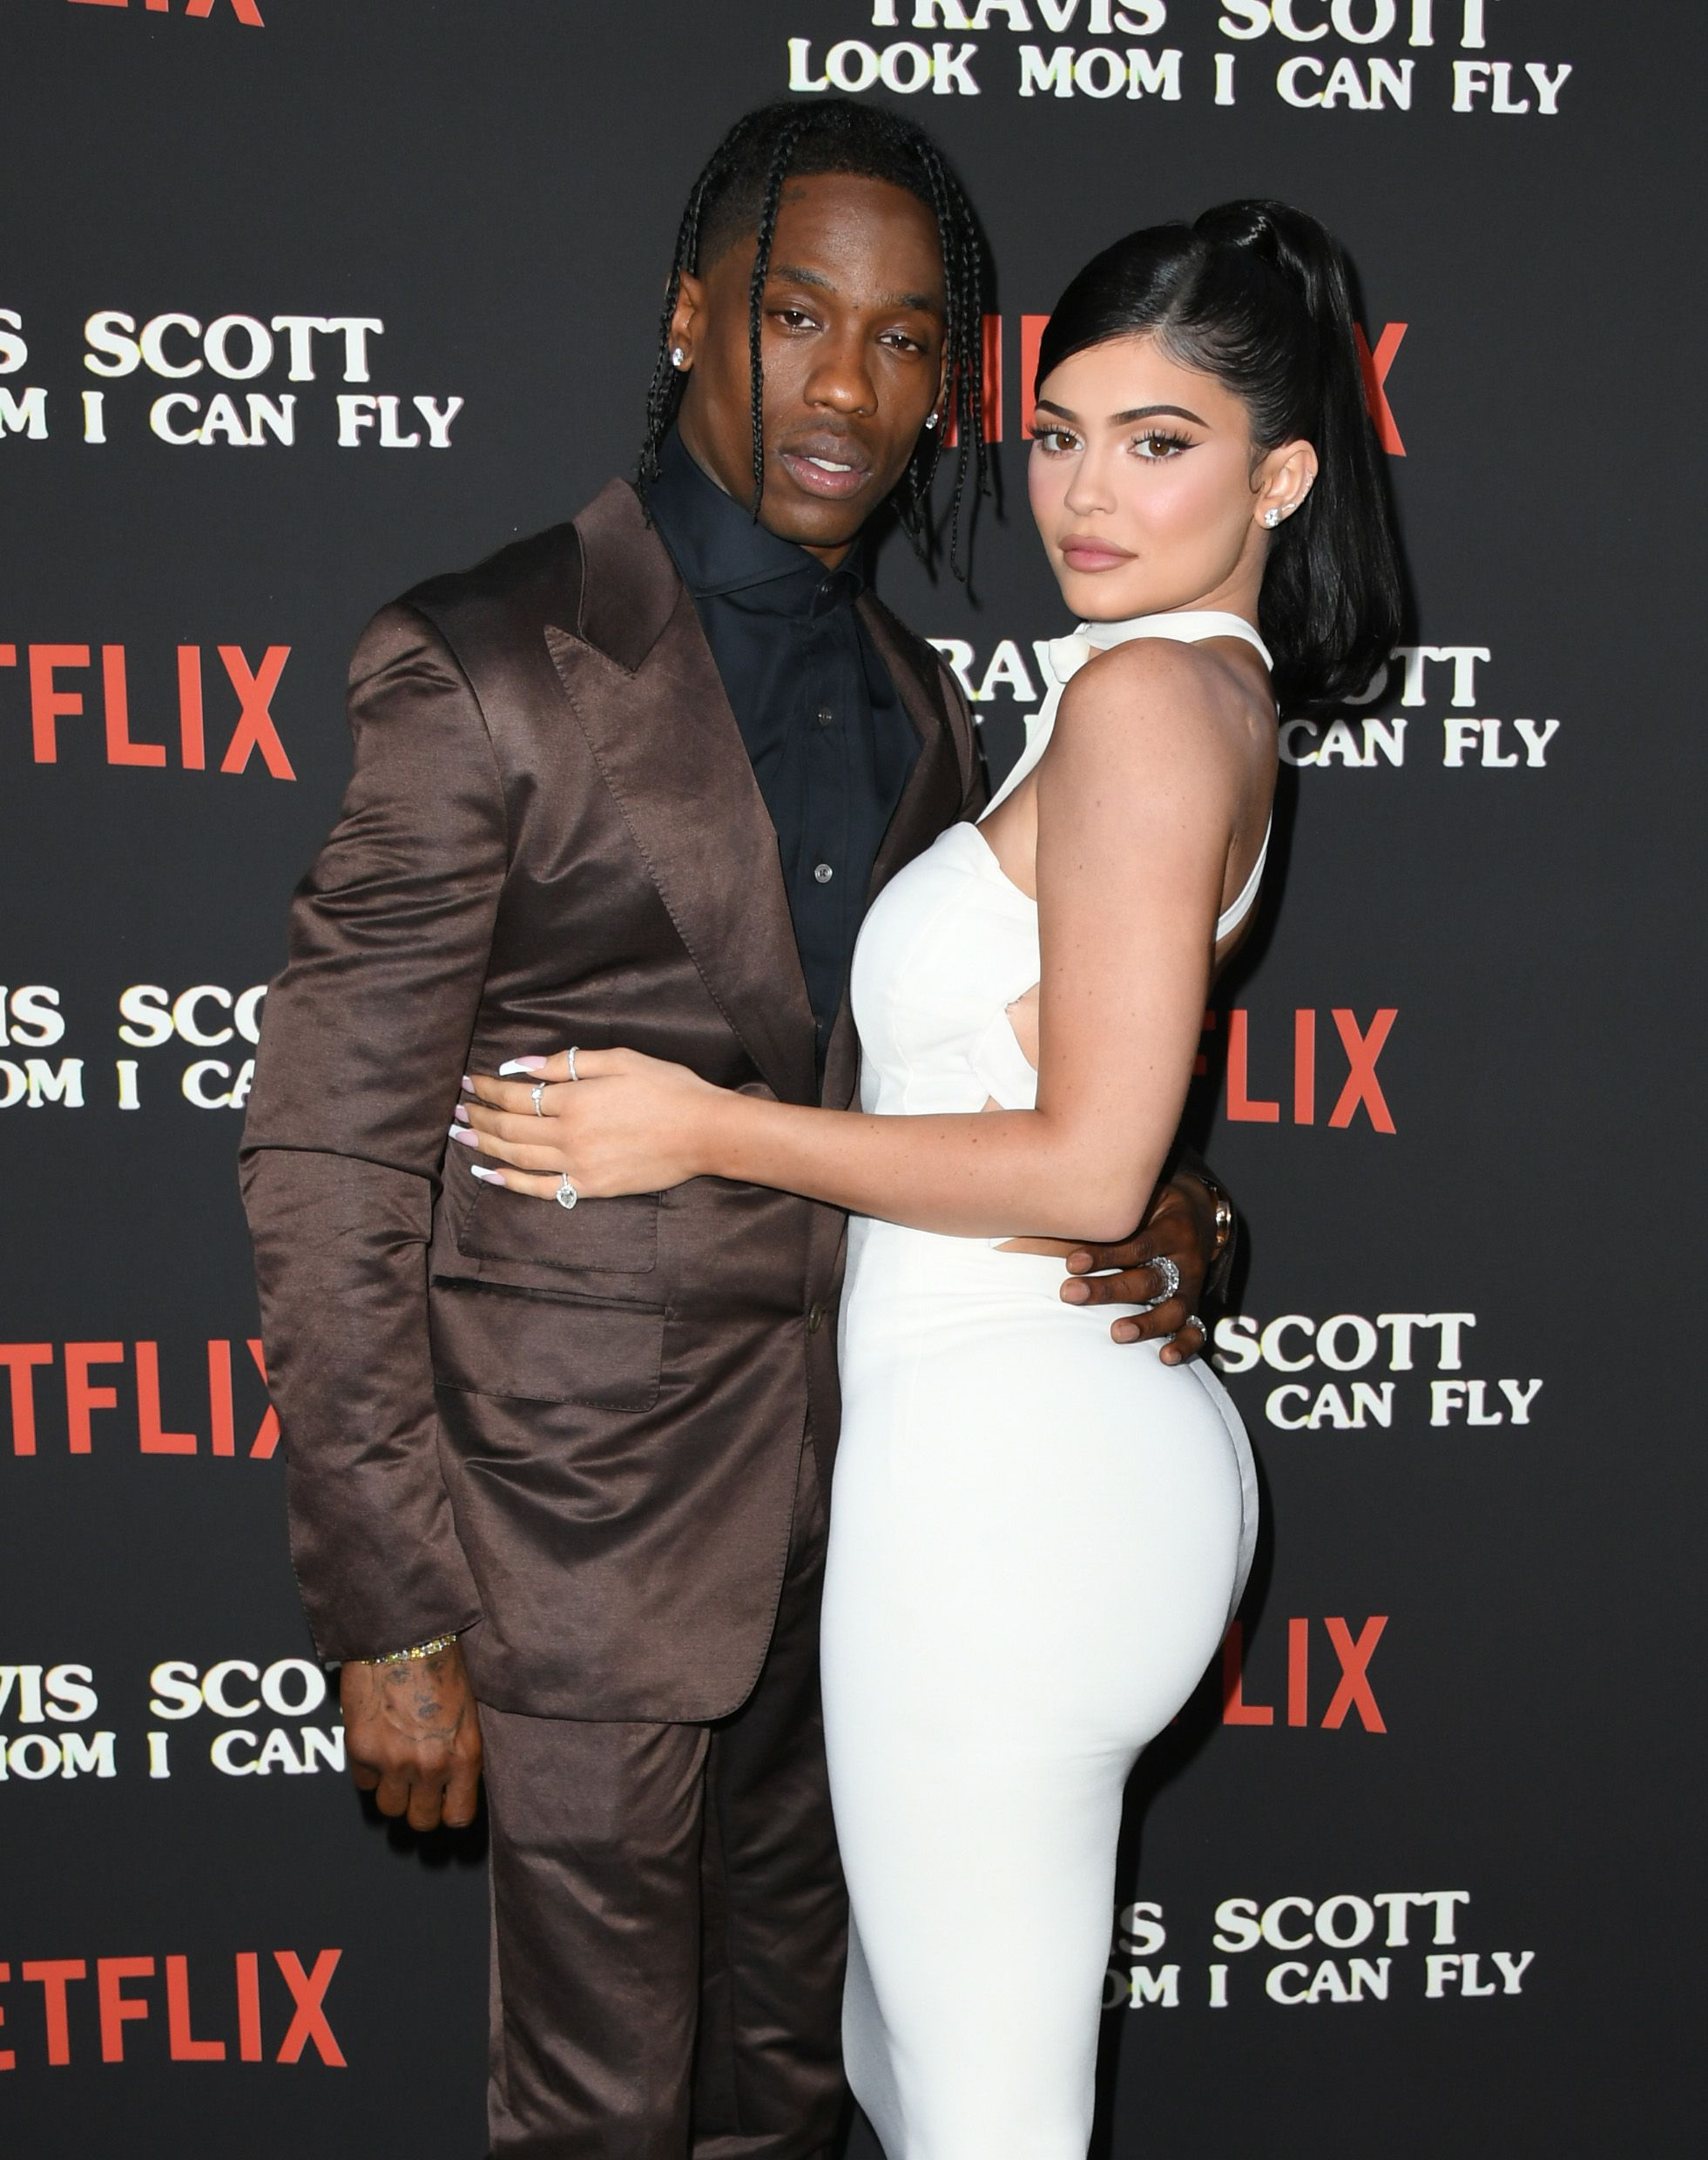 Kylie Jenner and Travis Scott Relationship Timeline - How